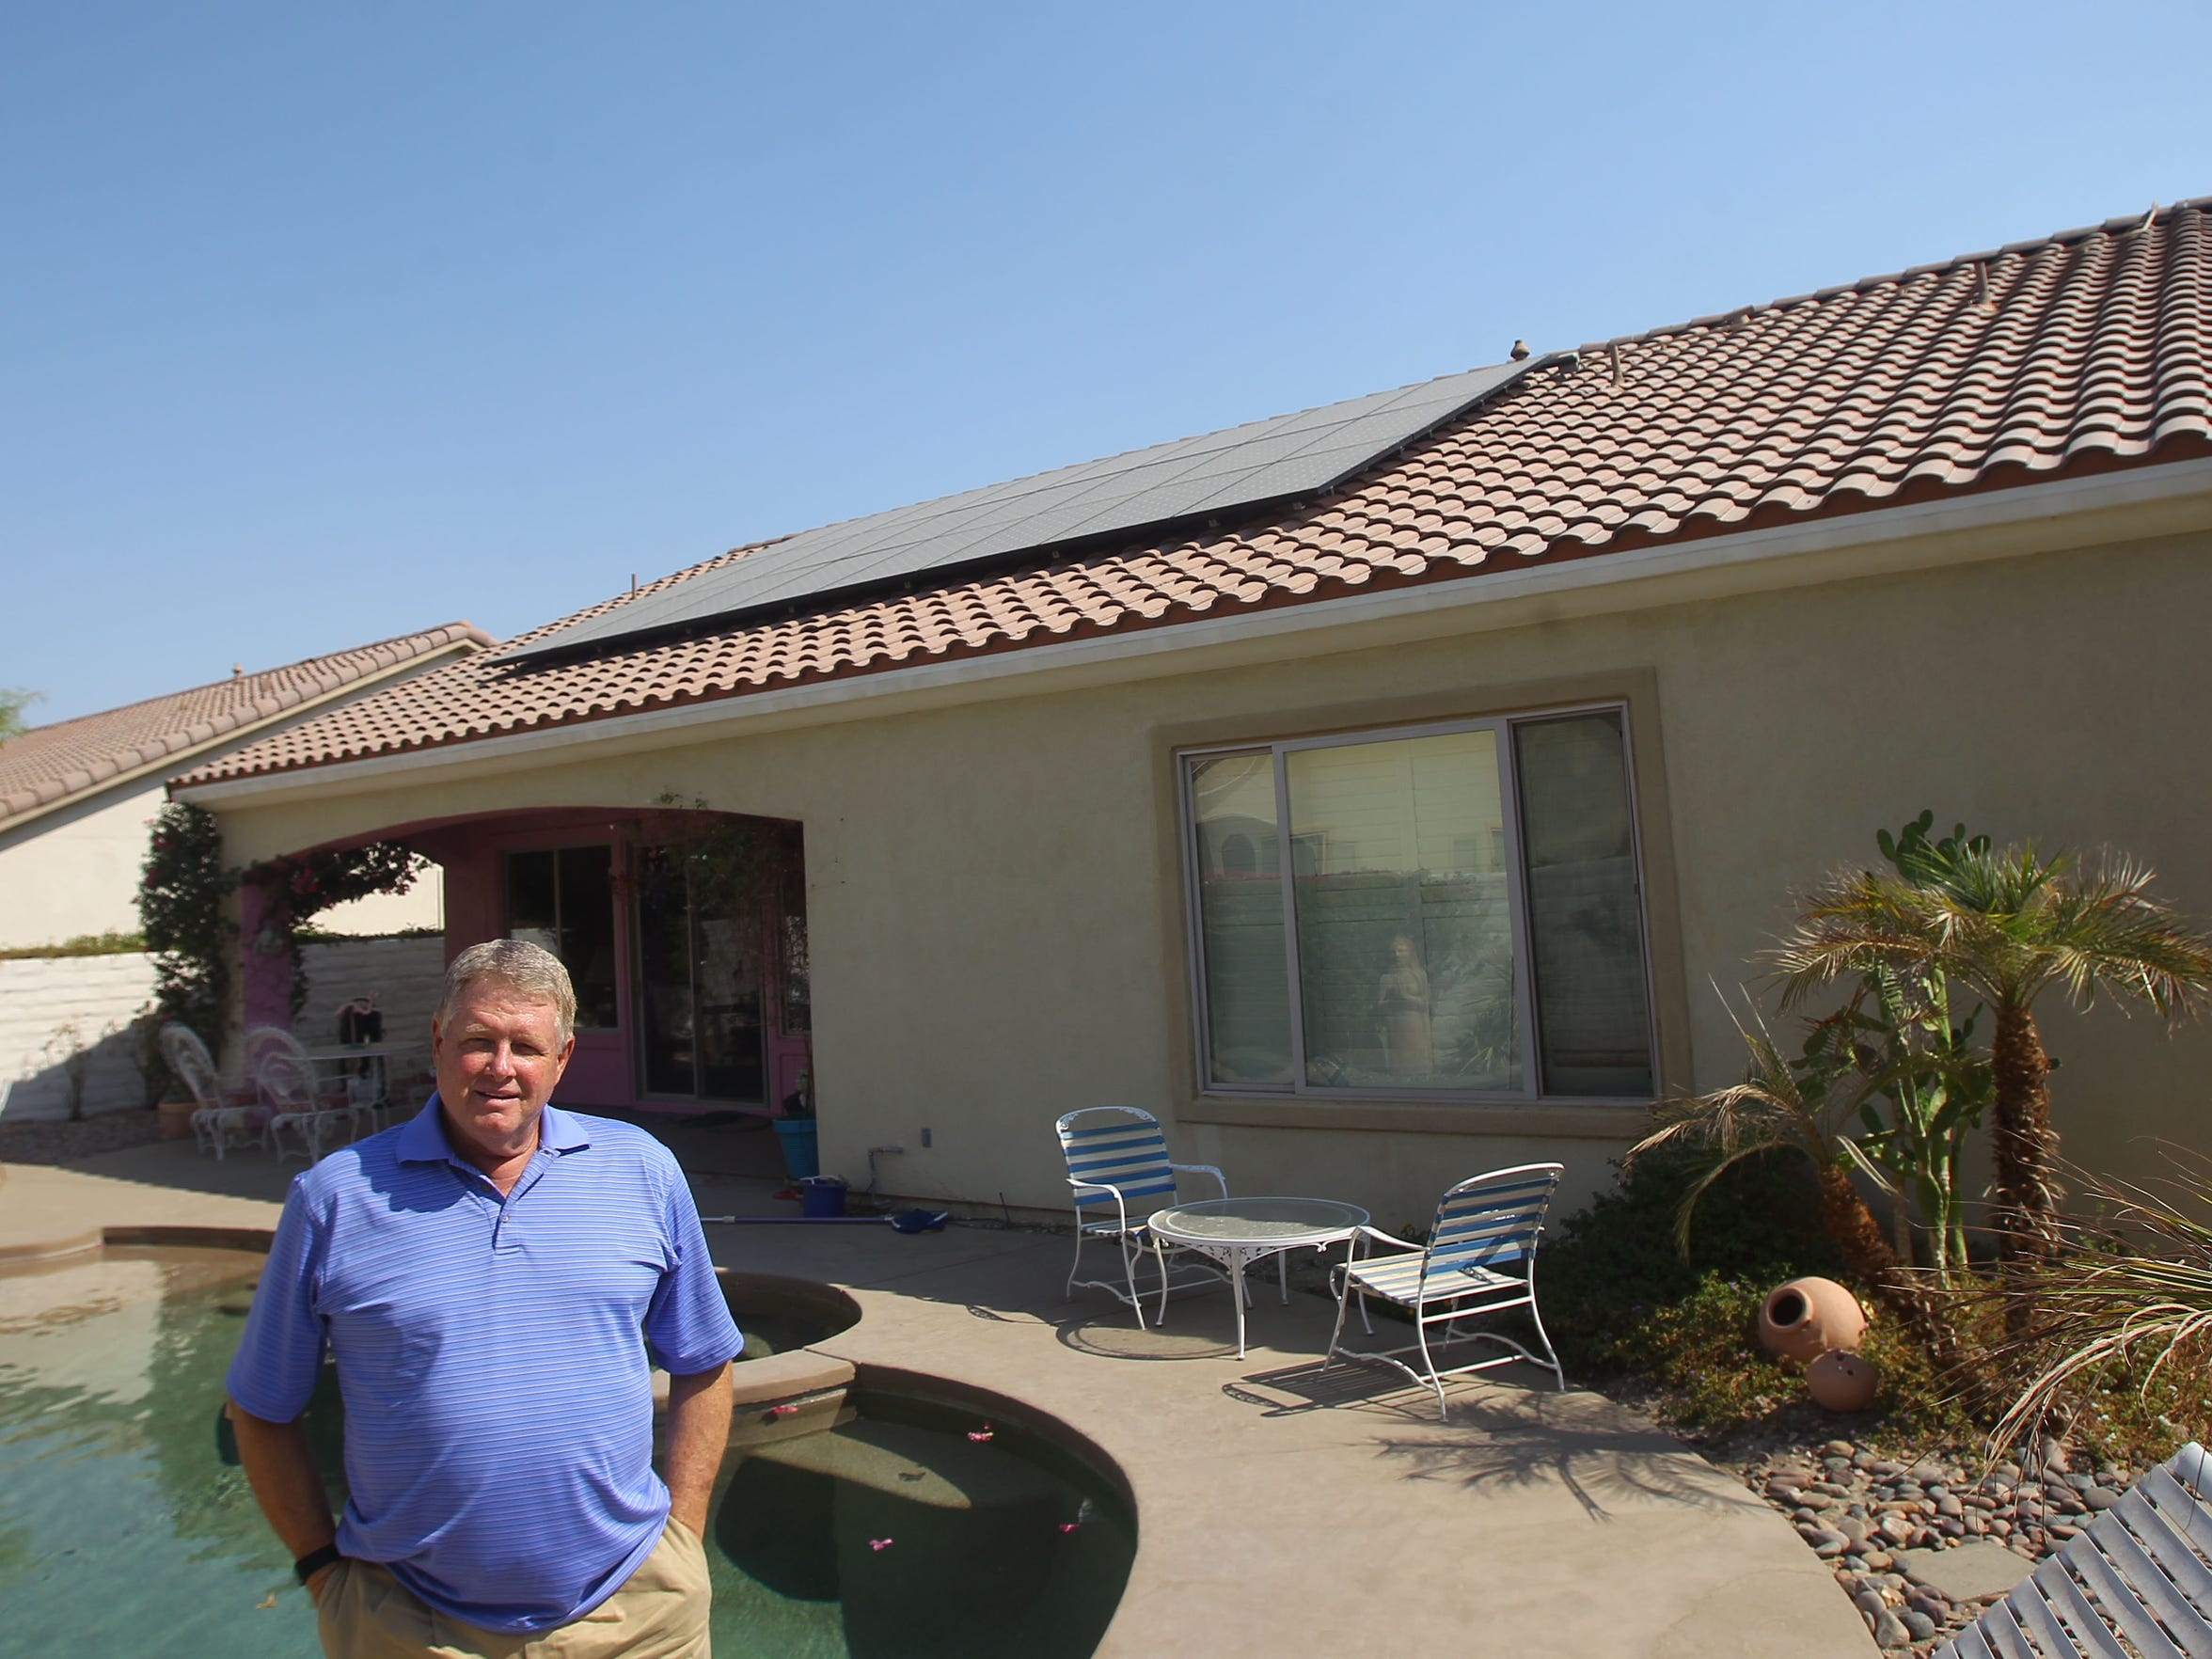 Bob Turley had solar panels installed at his Indio home in January 2016. The panels sat unused for months, not generating electricity, because of the Imperial Irrigation District's decision to close net metering to new applicants.